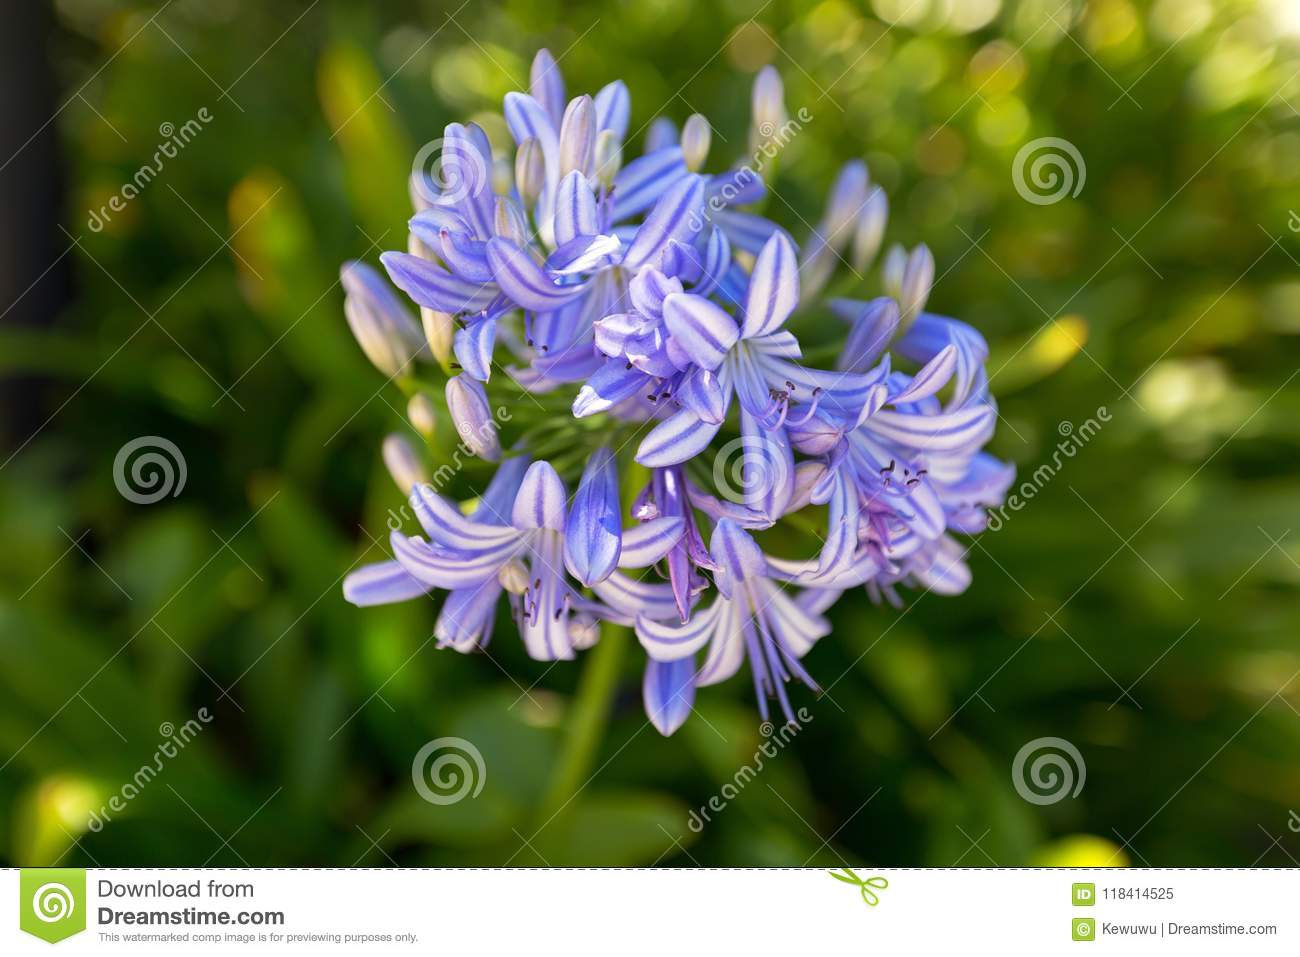 Lily of the nile flower in blue purple color also called africa lily of the nile flower in blue purple color also called africa izmirmasajfo